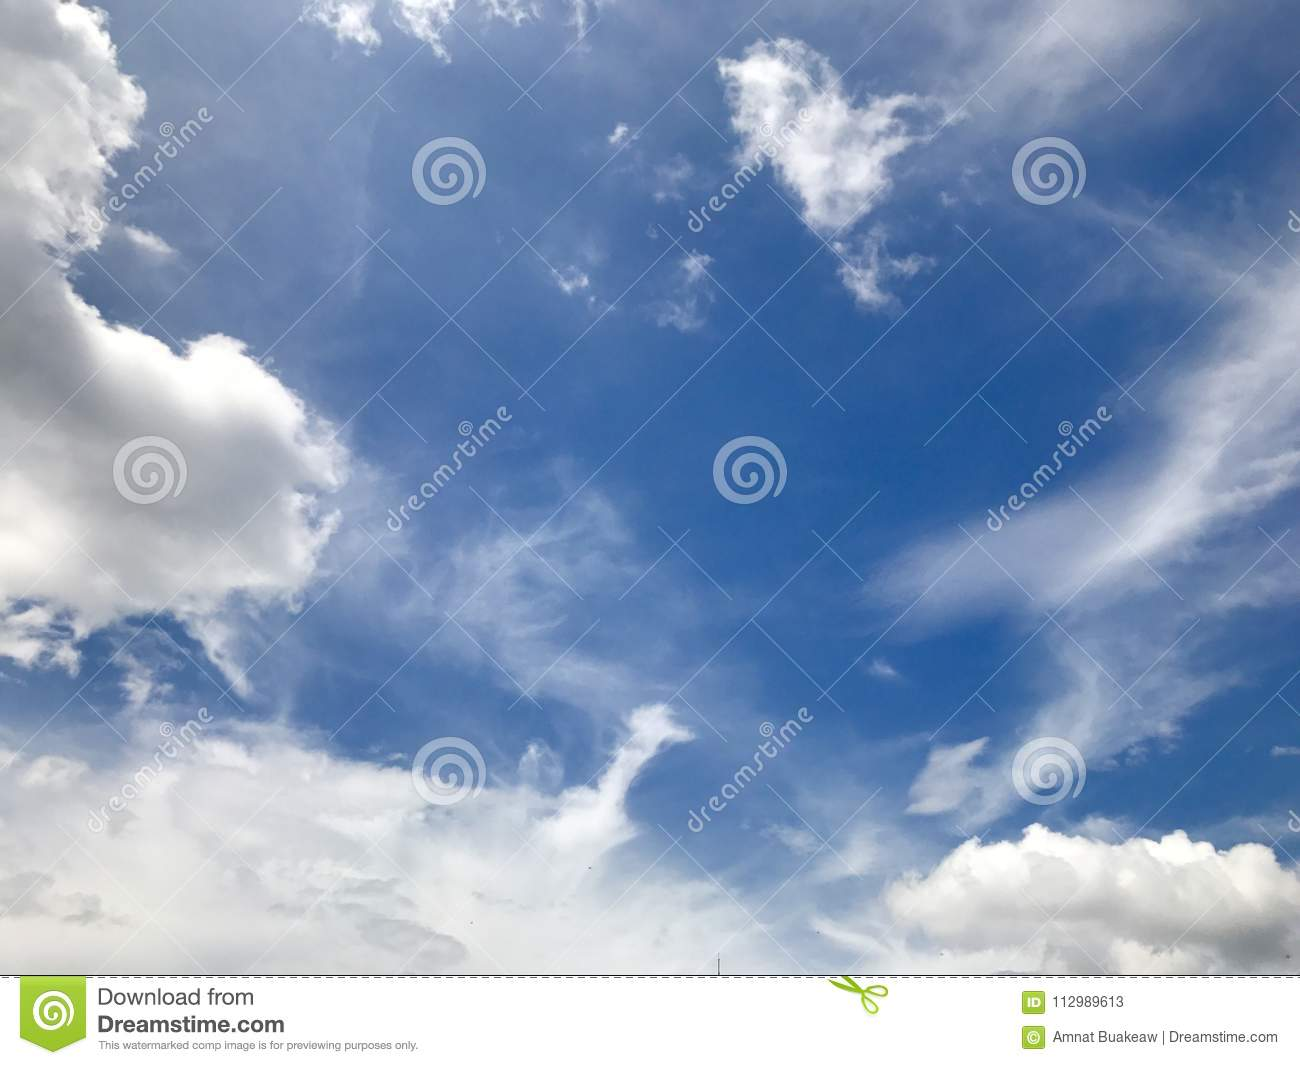 Beautiful blue sky with clouds for background and bright lighting clear on Summer